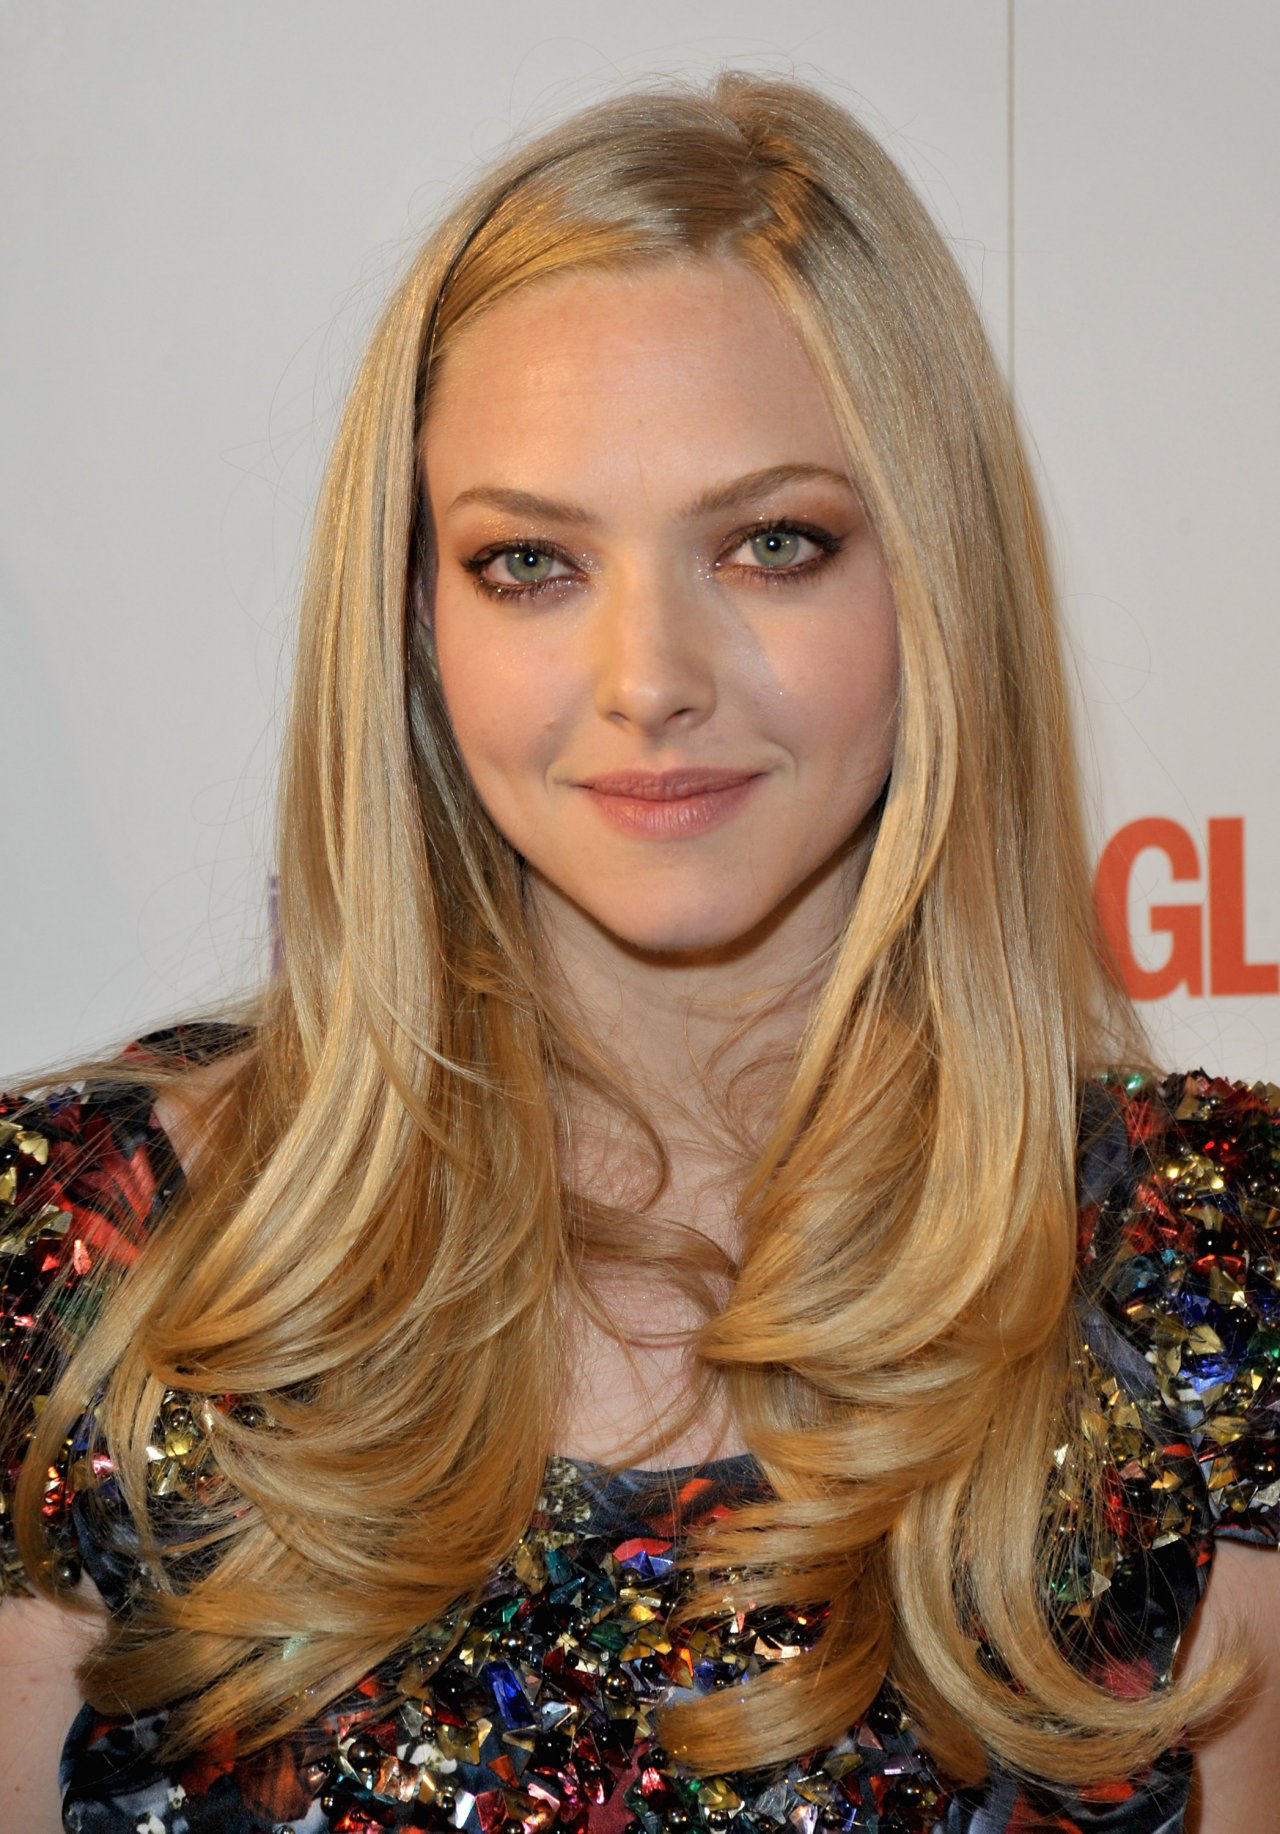 Amanda Seyfried - Gallery Photo Colection